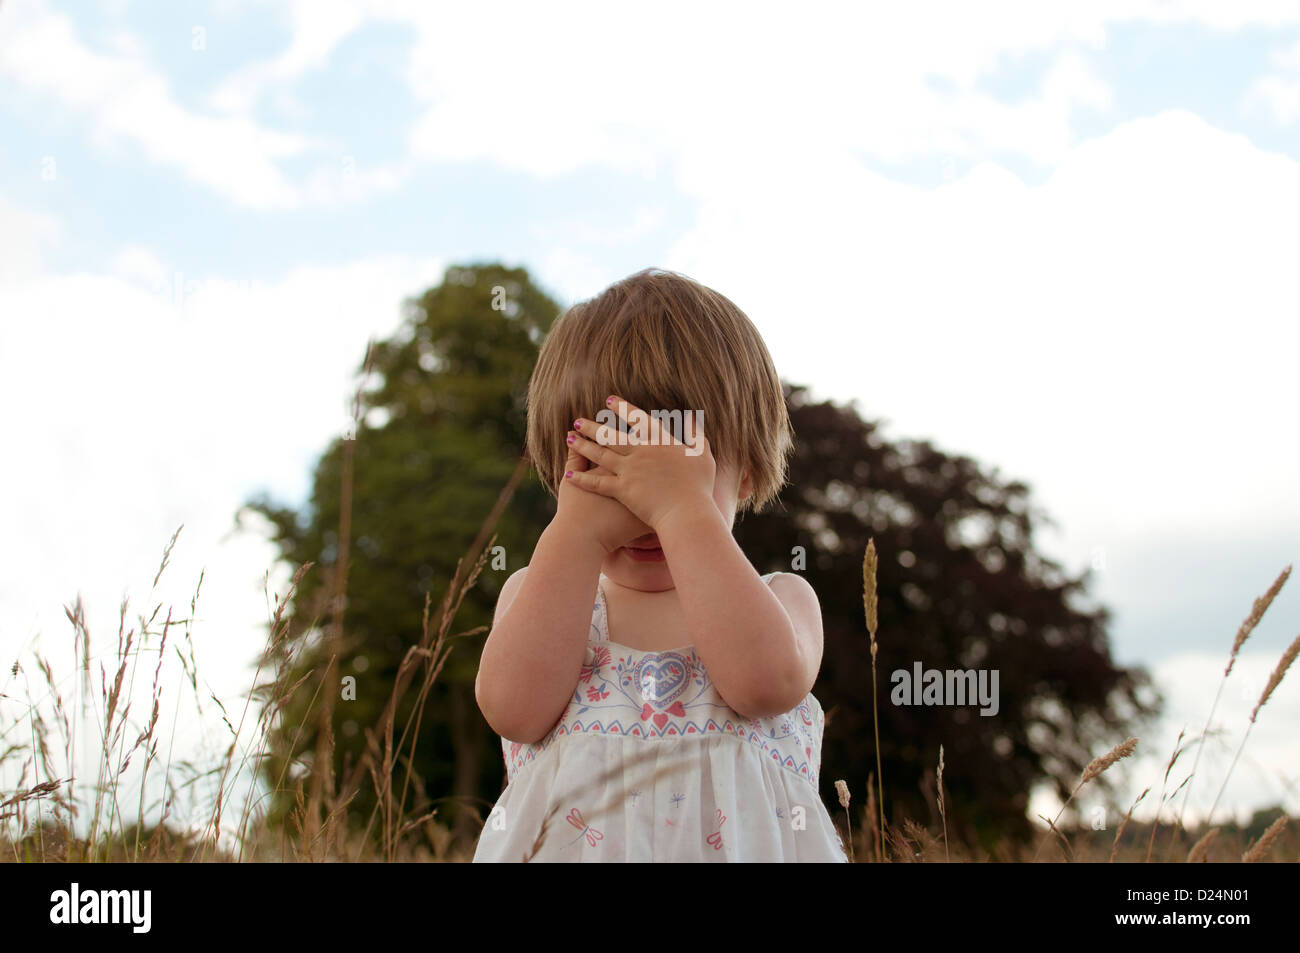 A little girl playing hide and seek outdoors - Stock Image